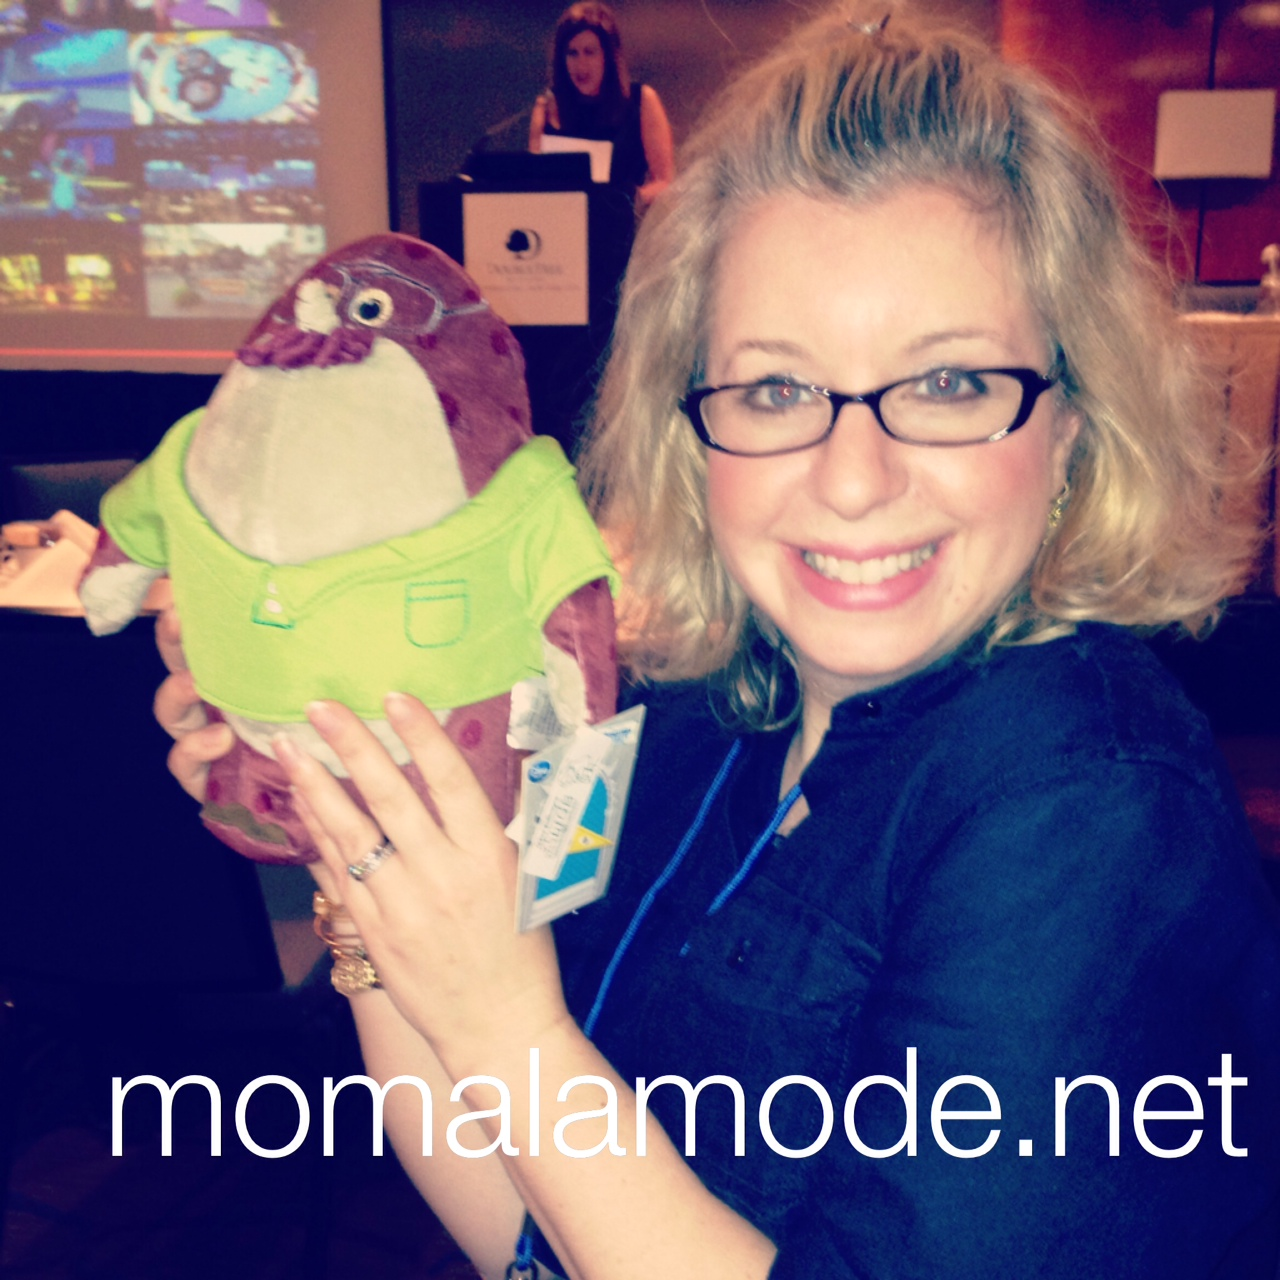 mom a la mode meets Don Carlton of Monsters Universtiy